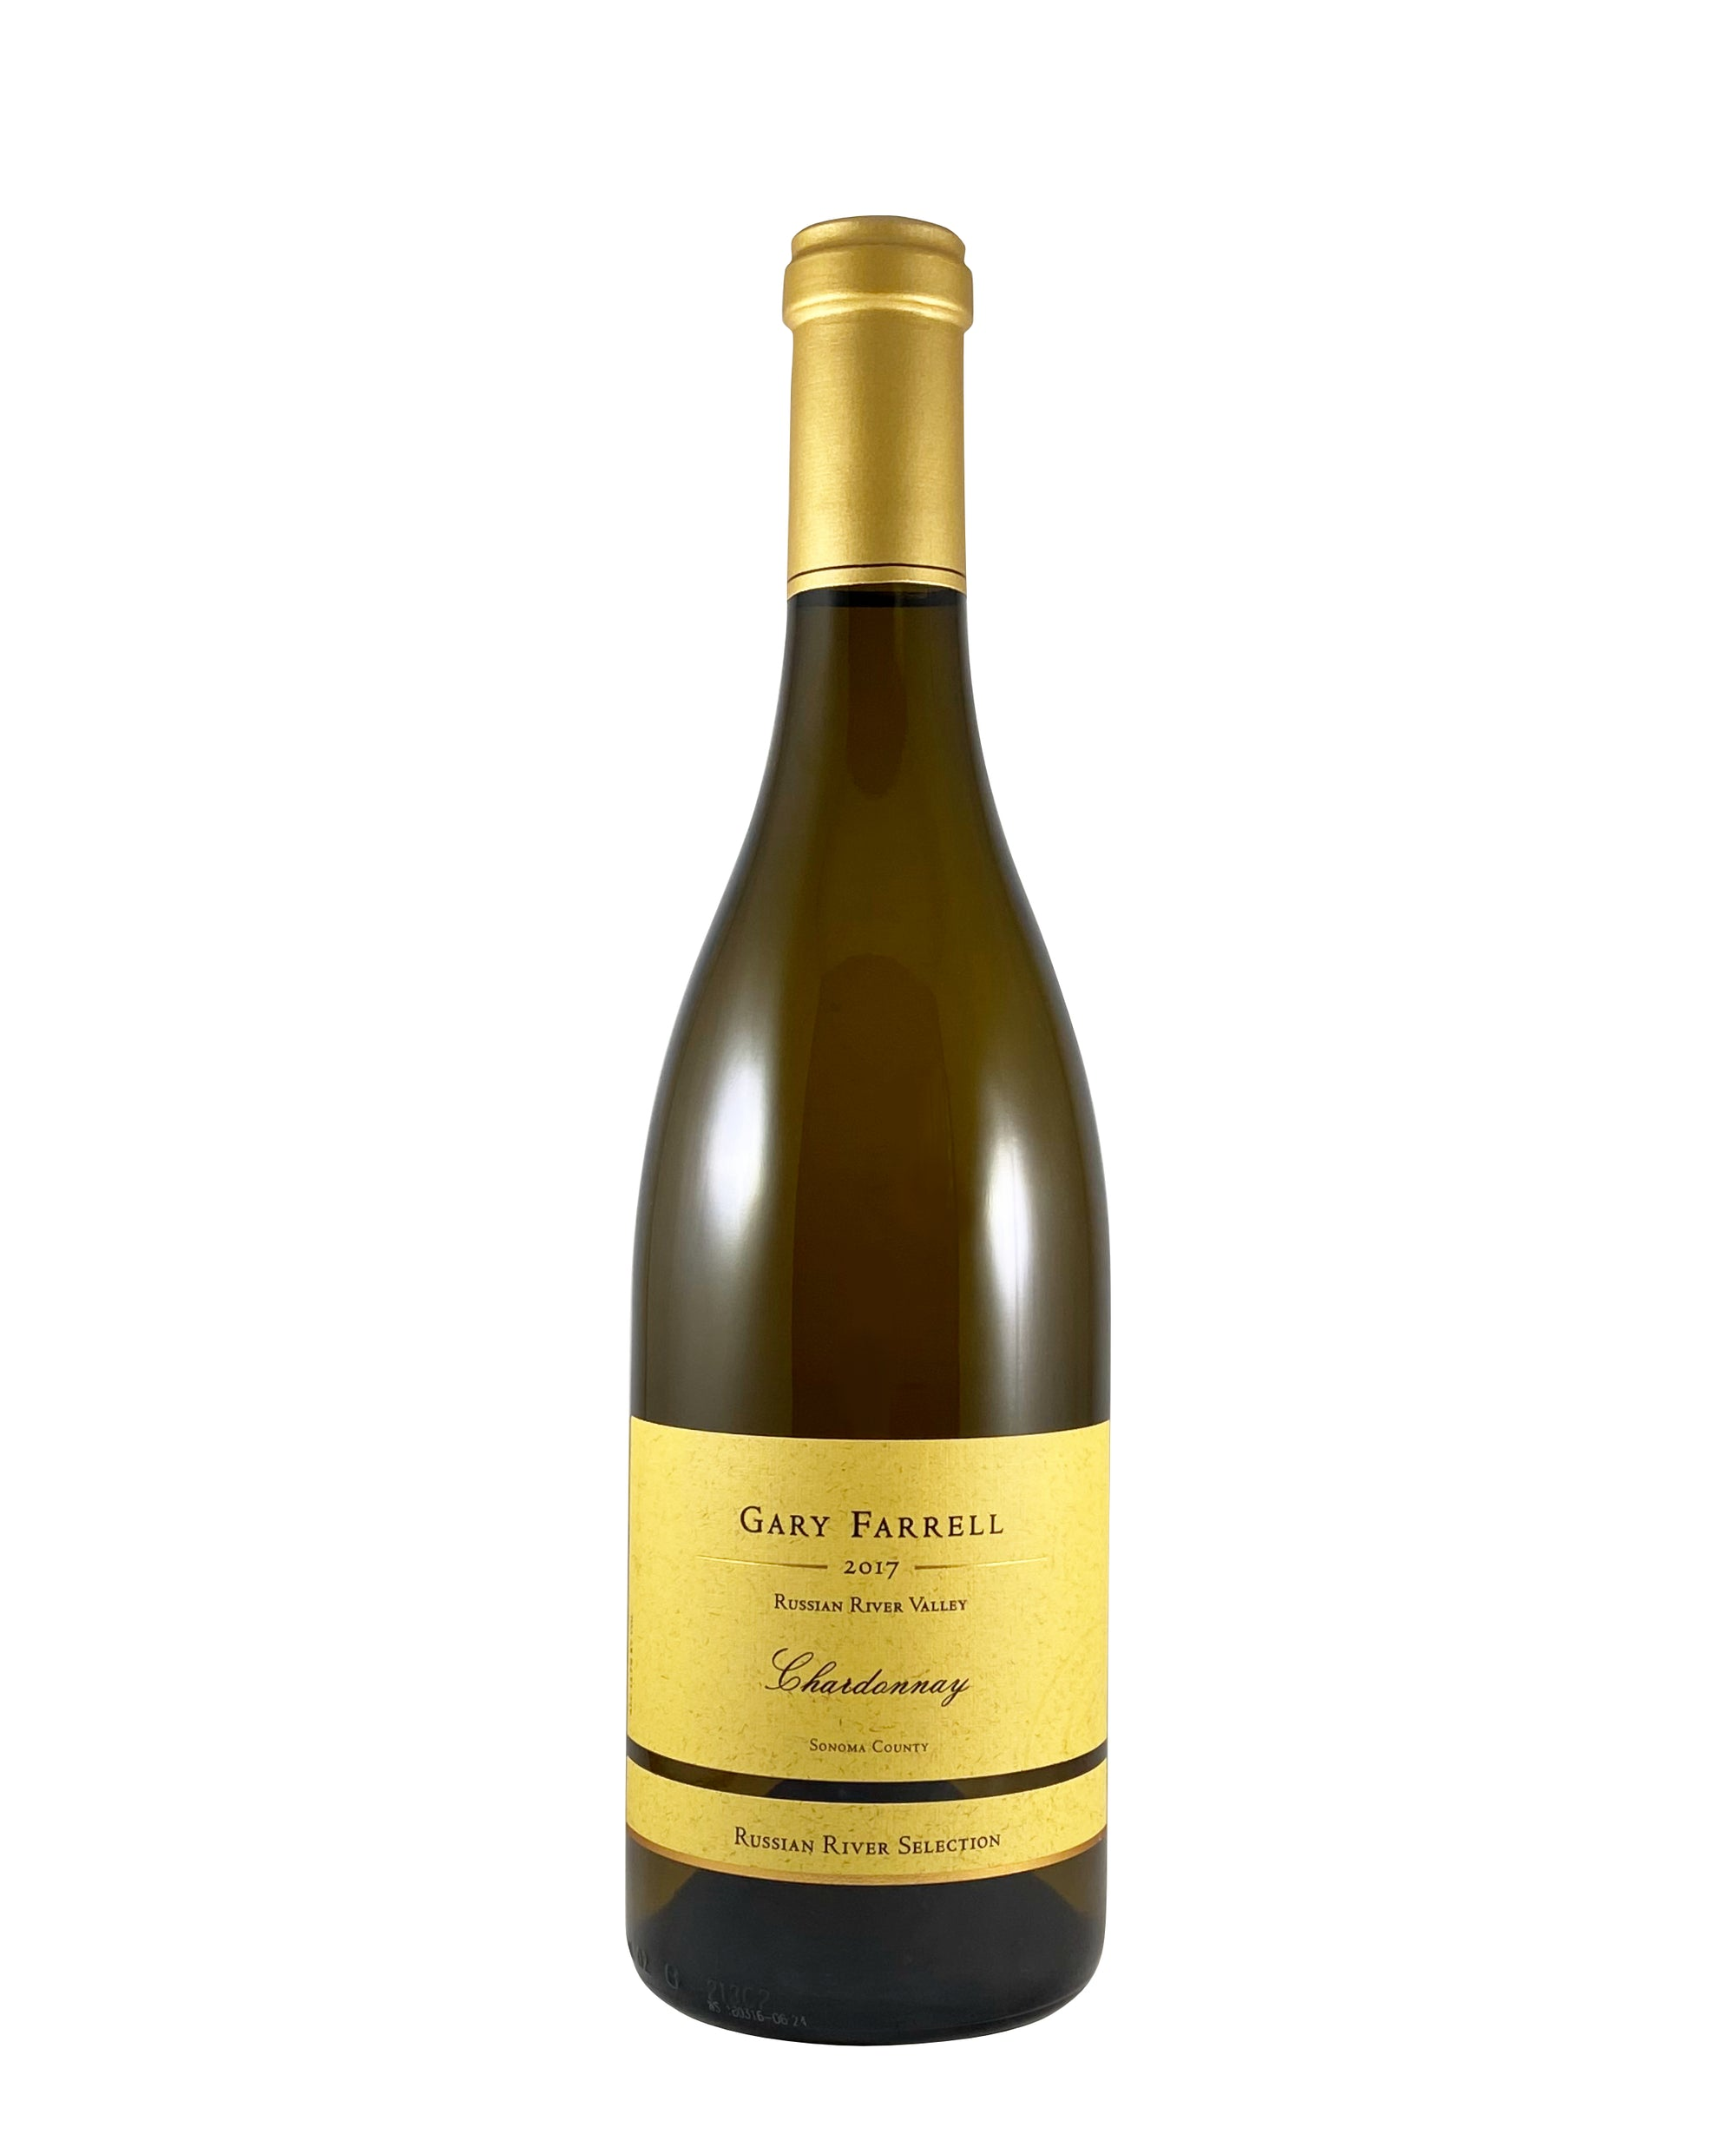 "*9W* 2018 Gary Farrell ""Russian River Selection"" Chardonnay Russian River Valley (Sonoma County, CA)"